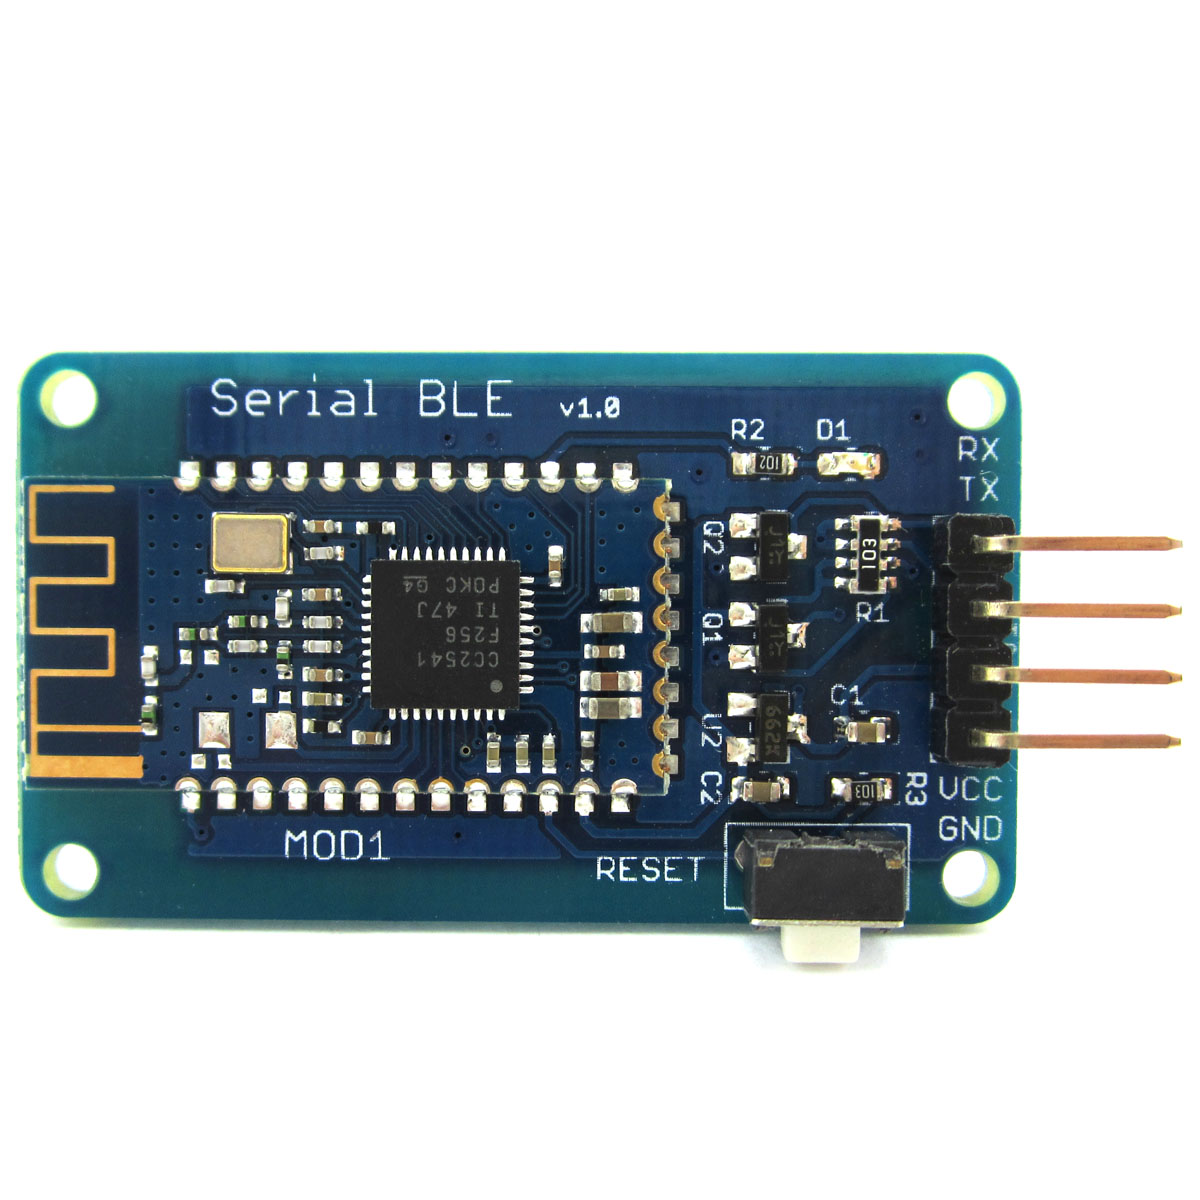 3.3V / 5V Wireless Serial Module Transceiver Module Board for Arduino